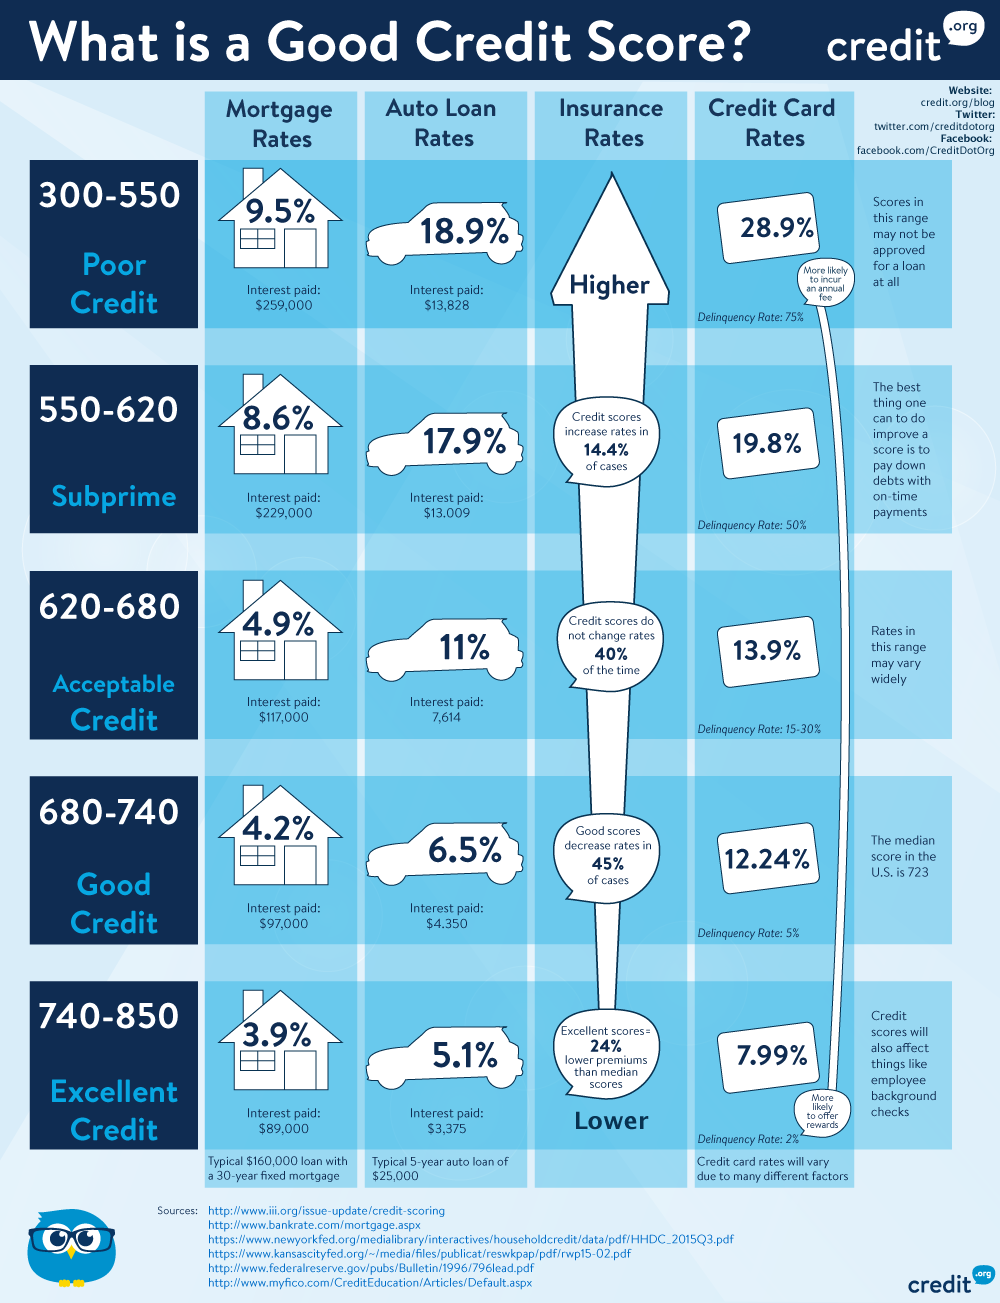 550 Credit Score Home Loan >> What is a good credit score? [Infographic]